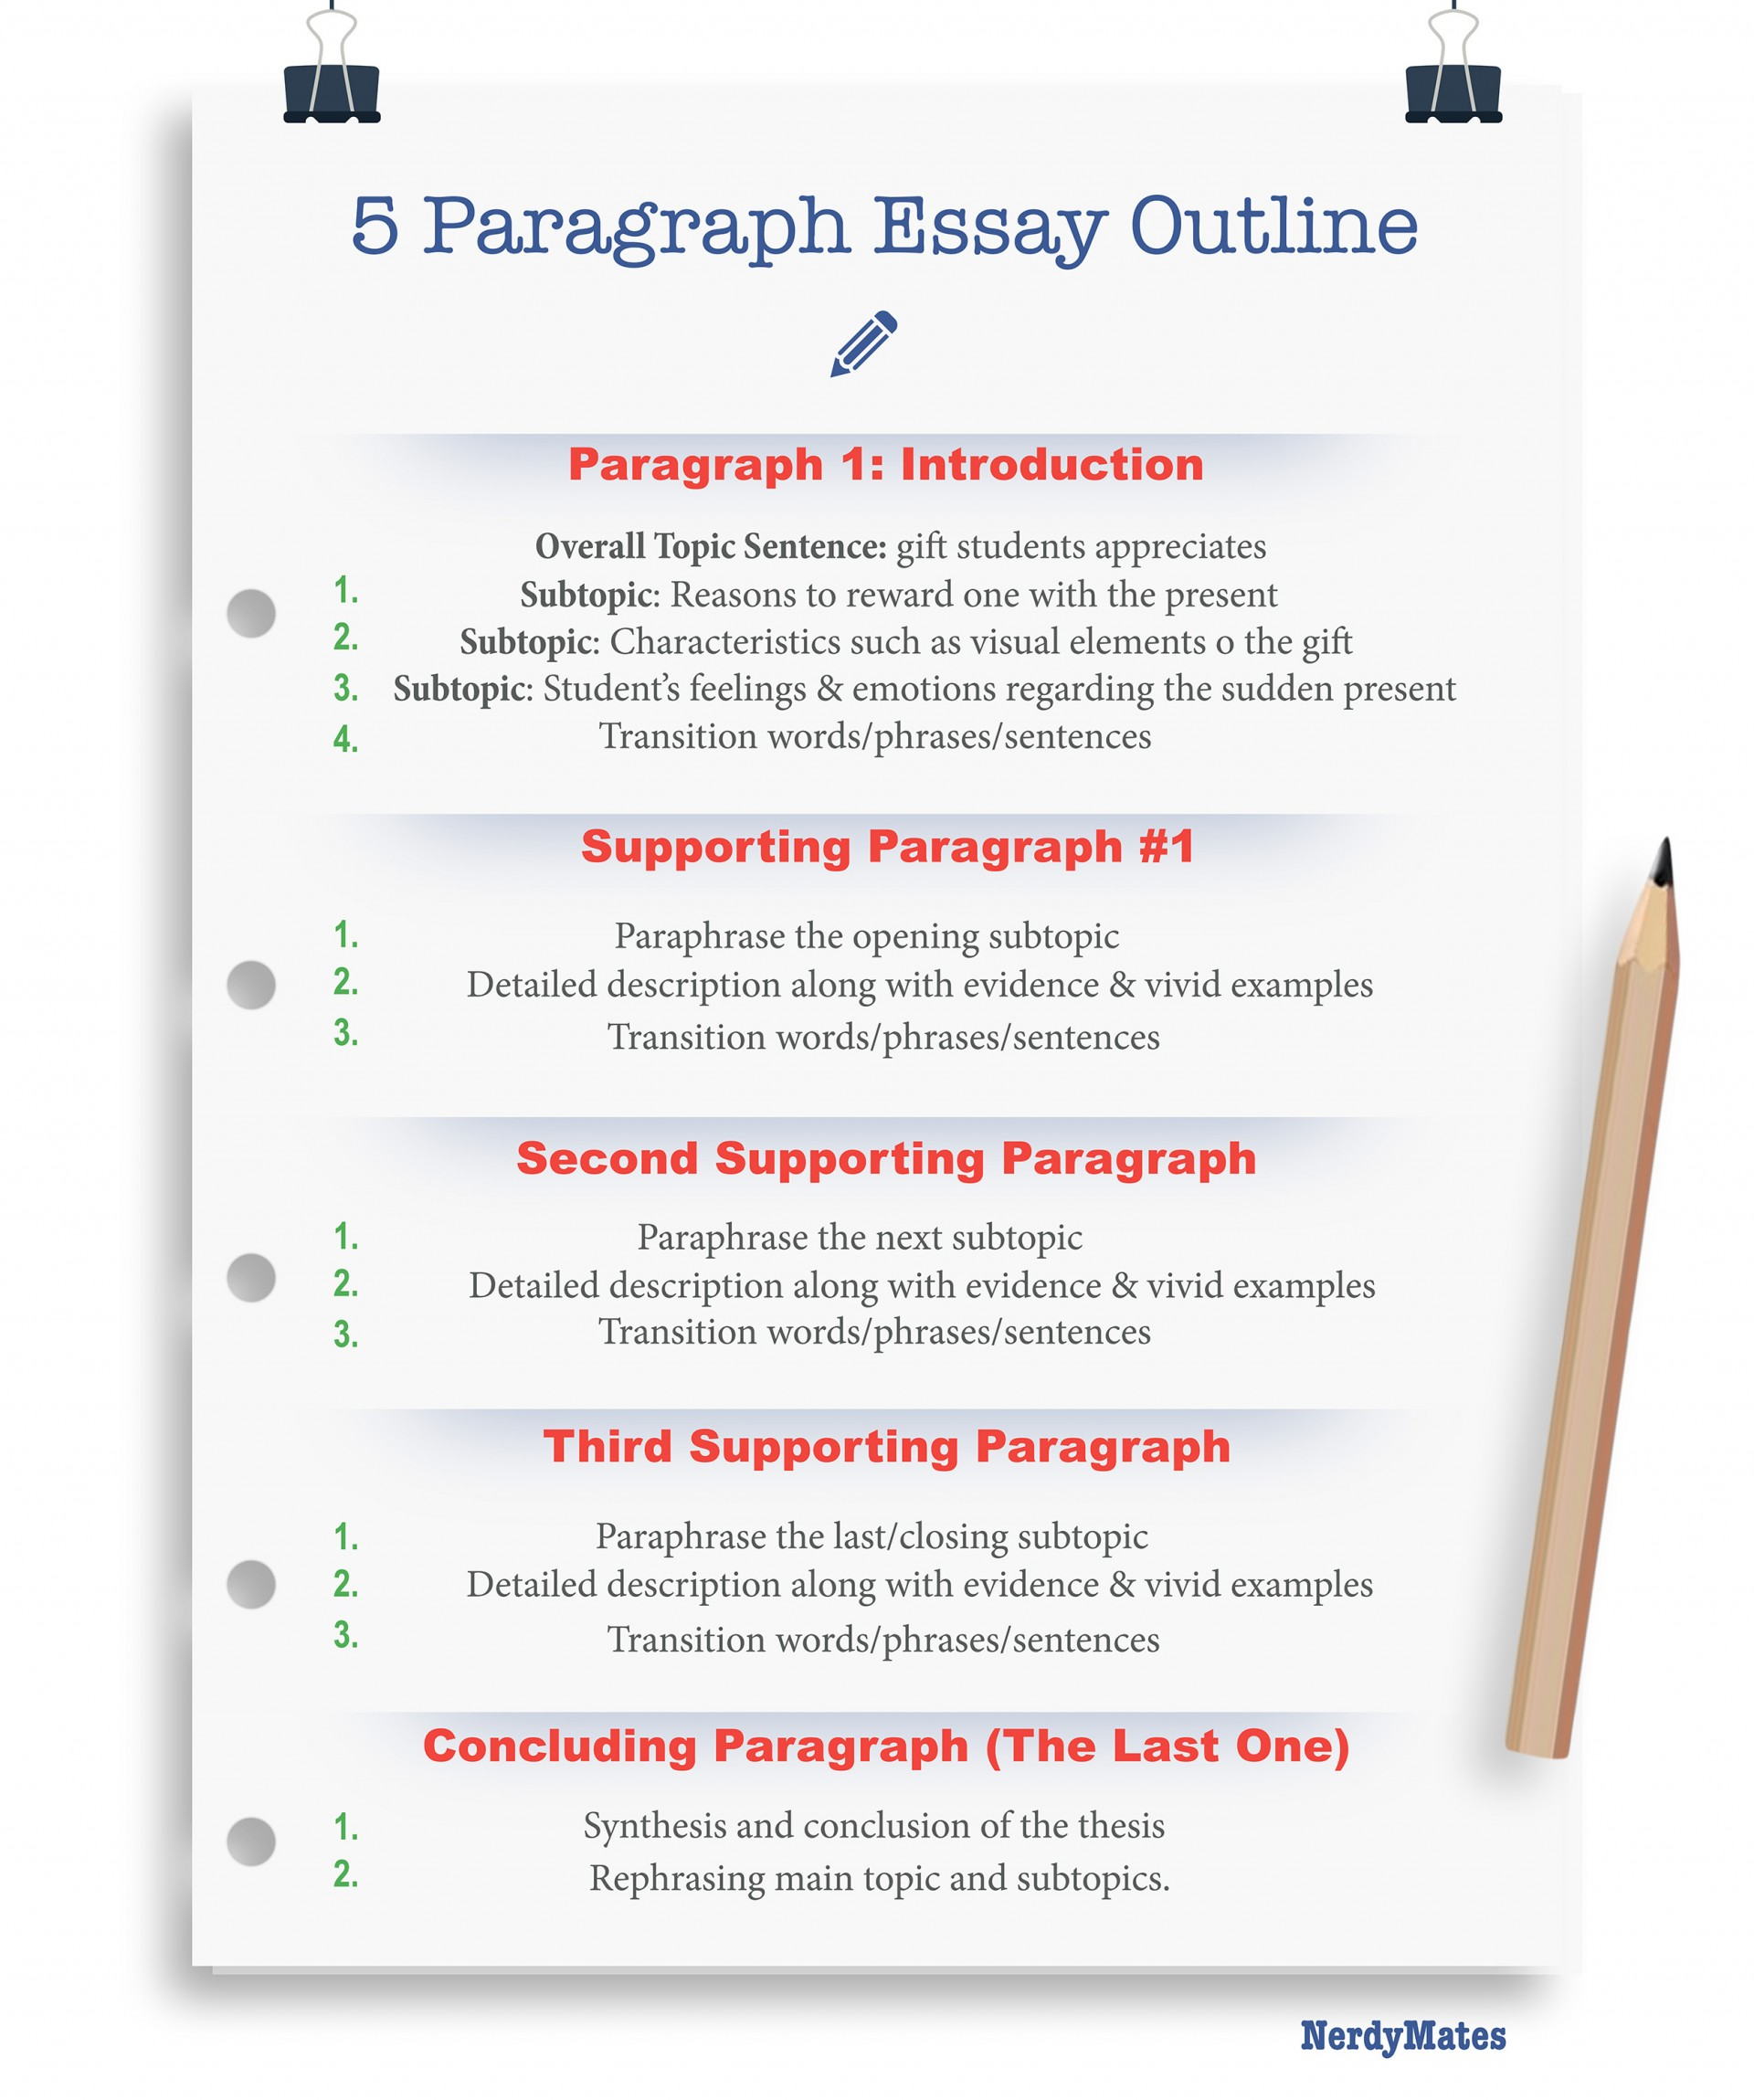 006 Essay Example How To Write Paragraph Writing Help Ou About Yourself Pdf 4th Grade Ppt Outline Do You Middle School In Minutes Unbelievable A 5 Mla Format 30 1920